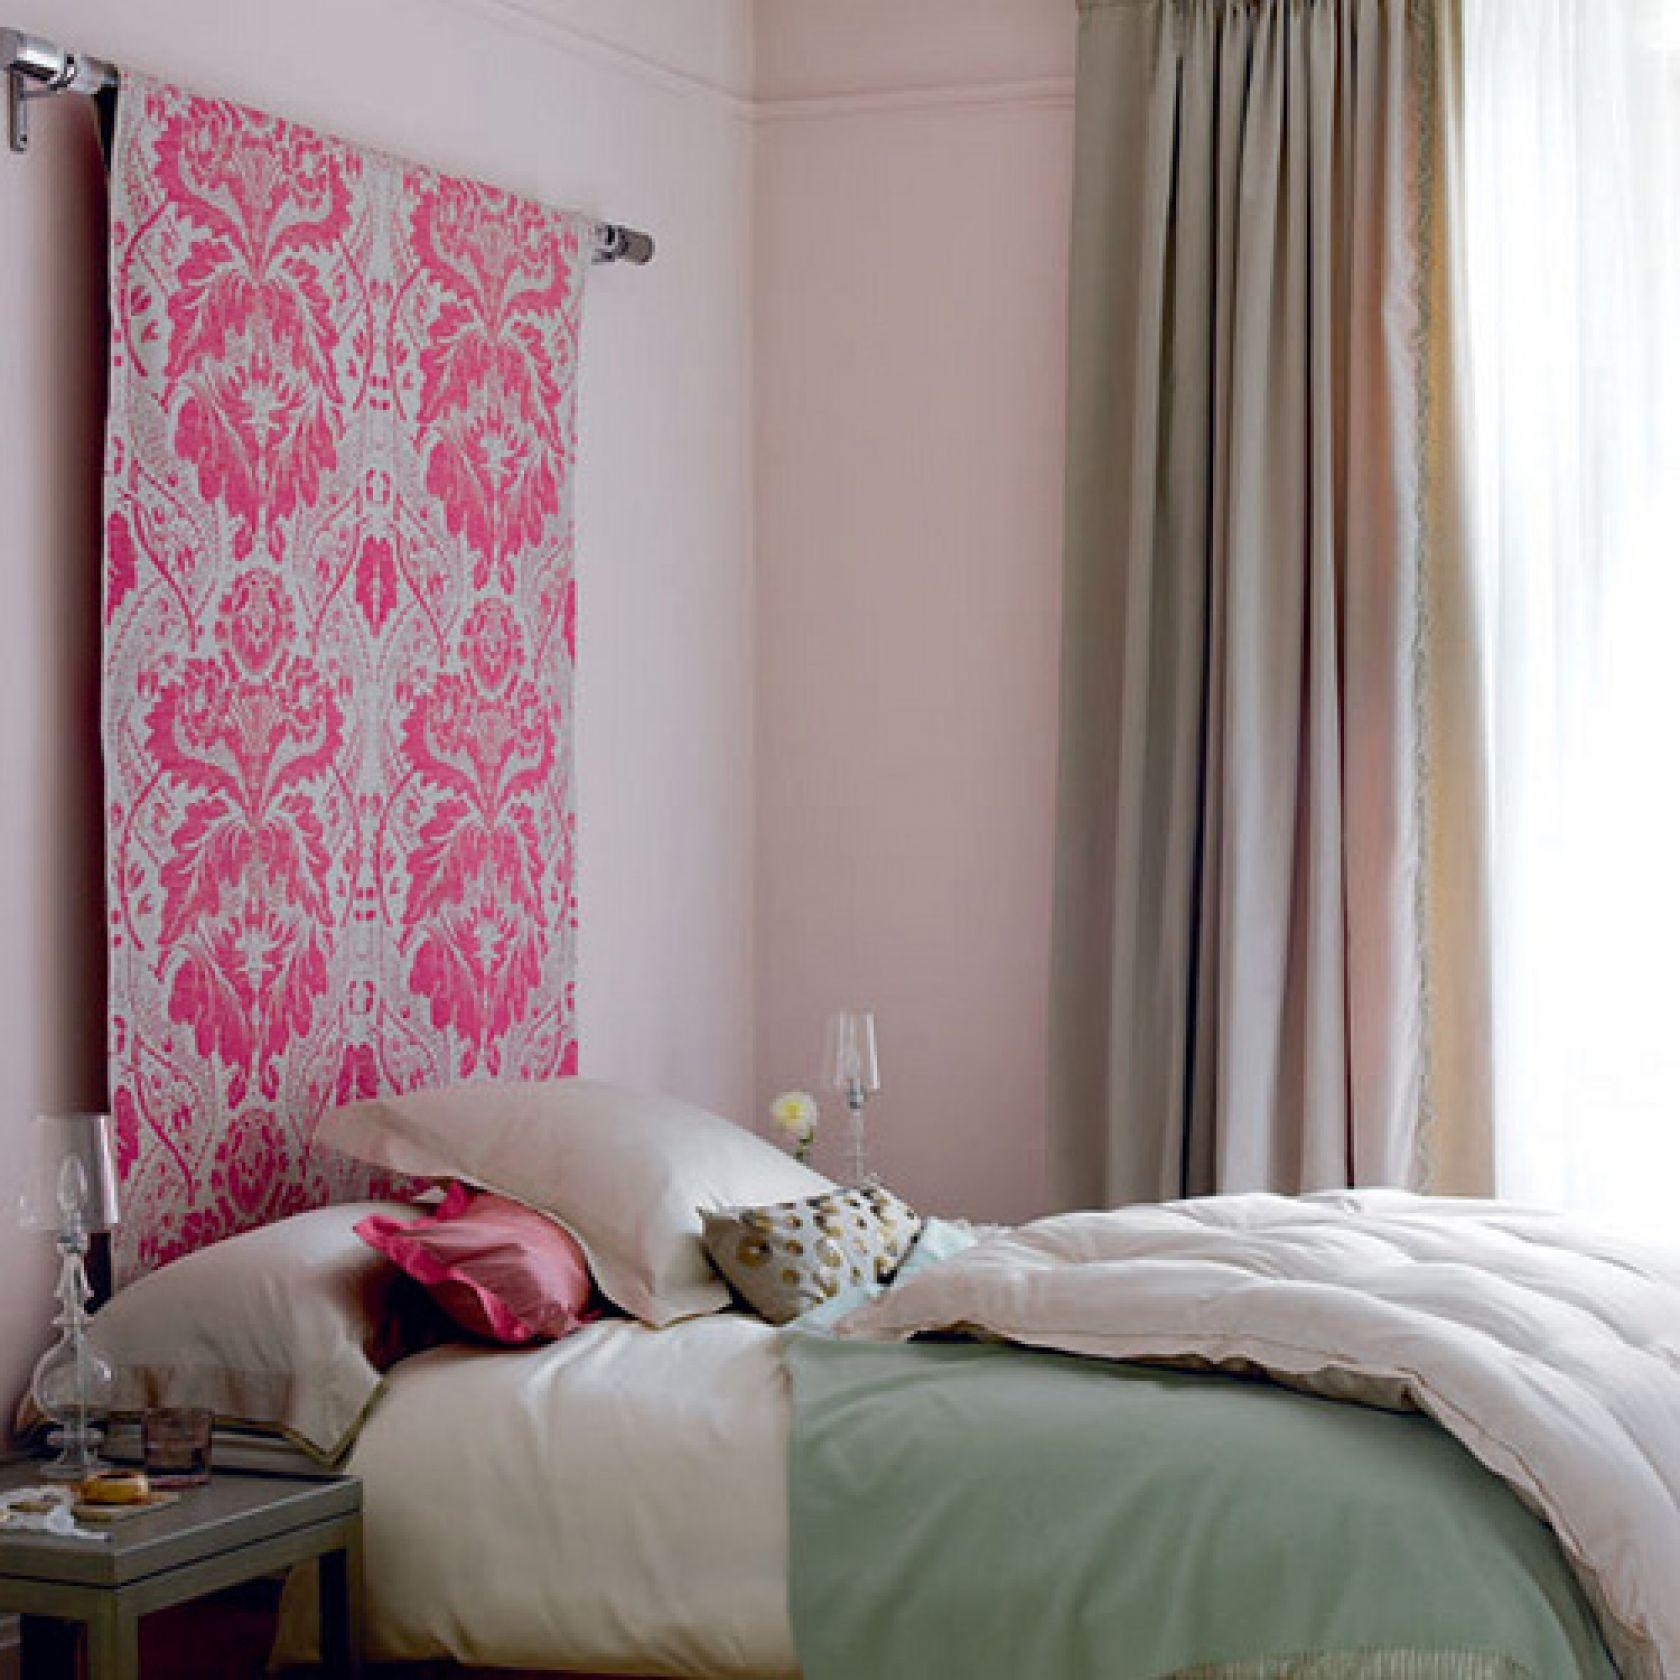 10 Ideas For That Empty Wall Space Over Your Bed For Wall Art Over Bed (View 11 of 20)